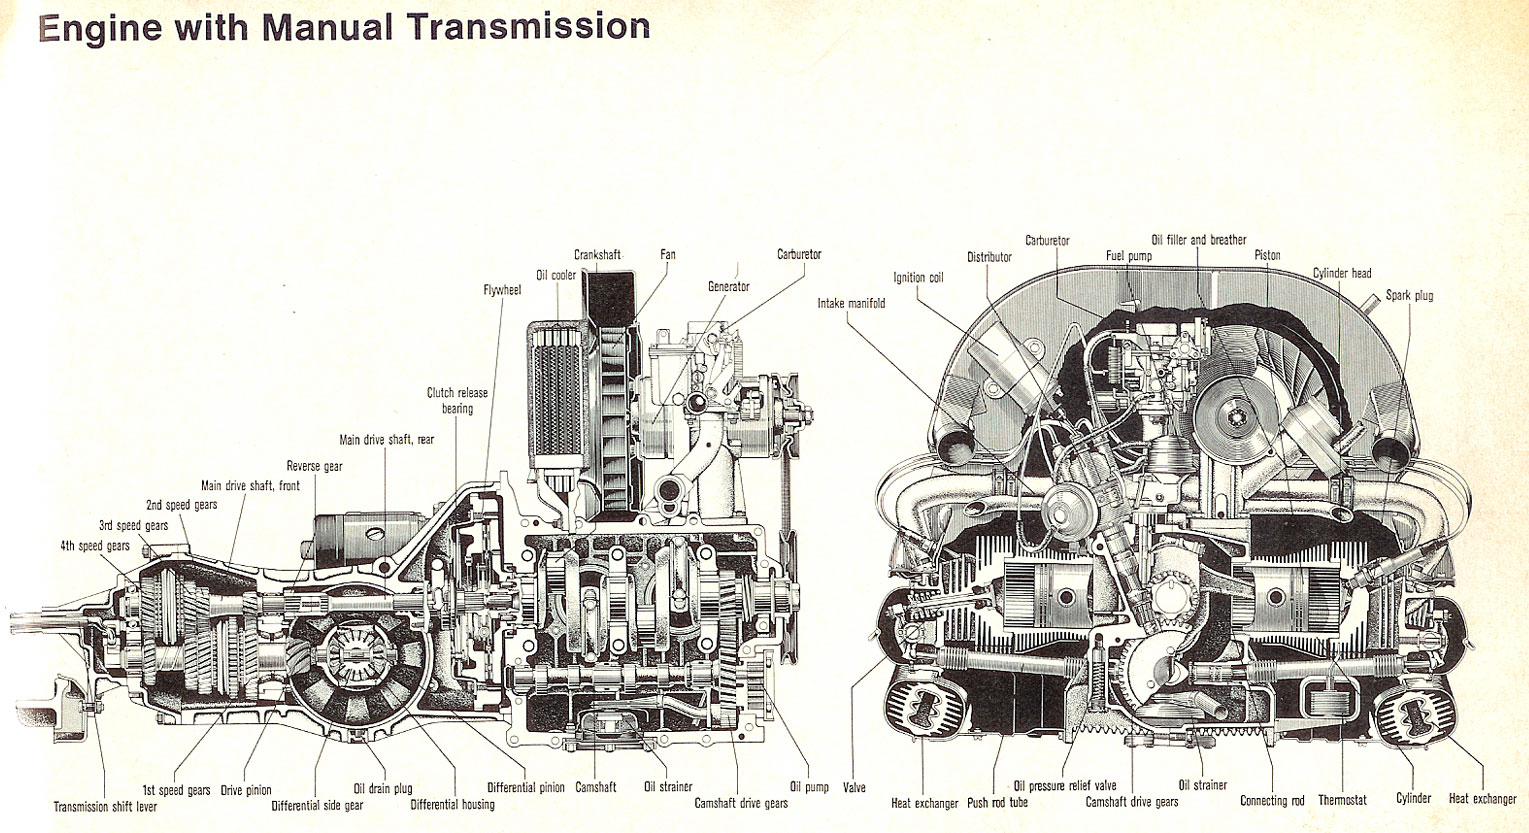 medium resolution of vw thing engine diagram schema wiring diagram online rh 18 17 travelmate nz de best air cooled vw engine vw beetle air cooled engines